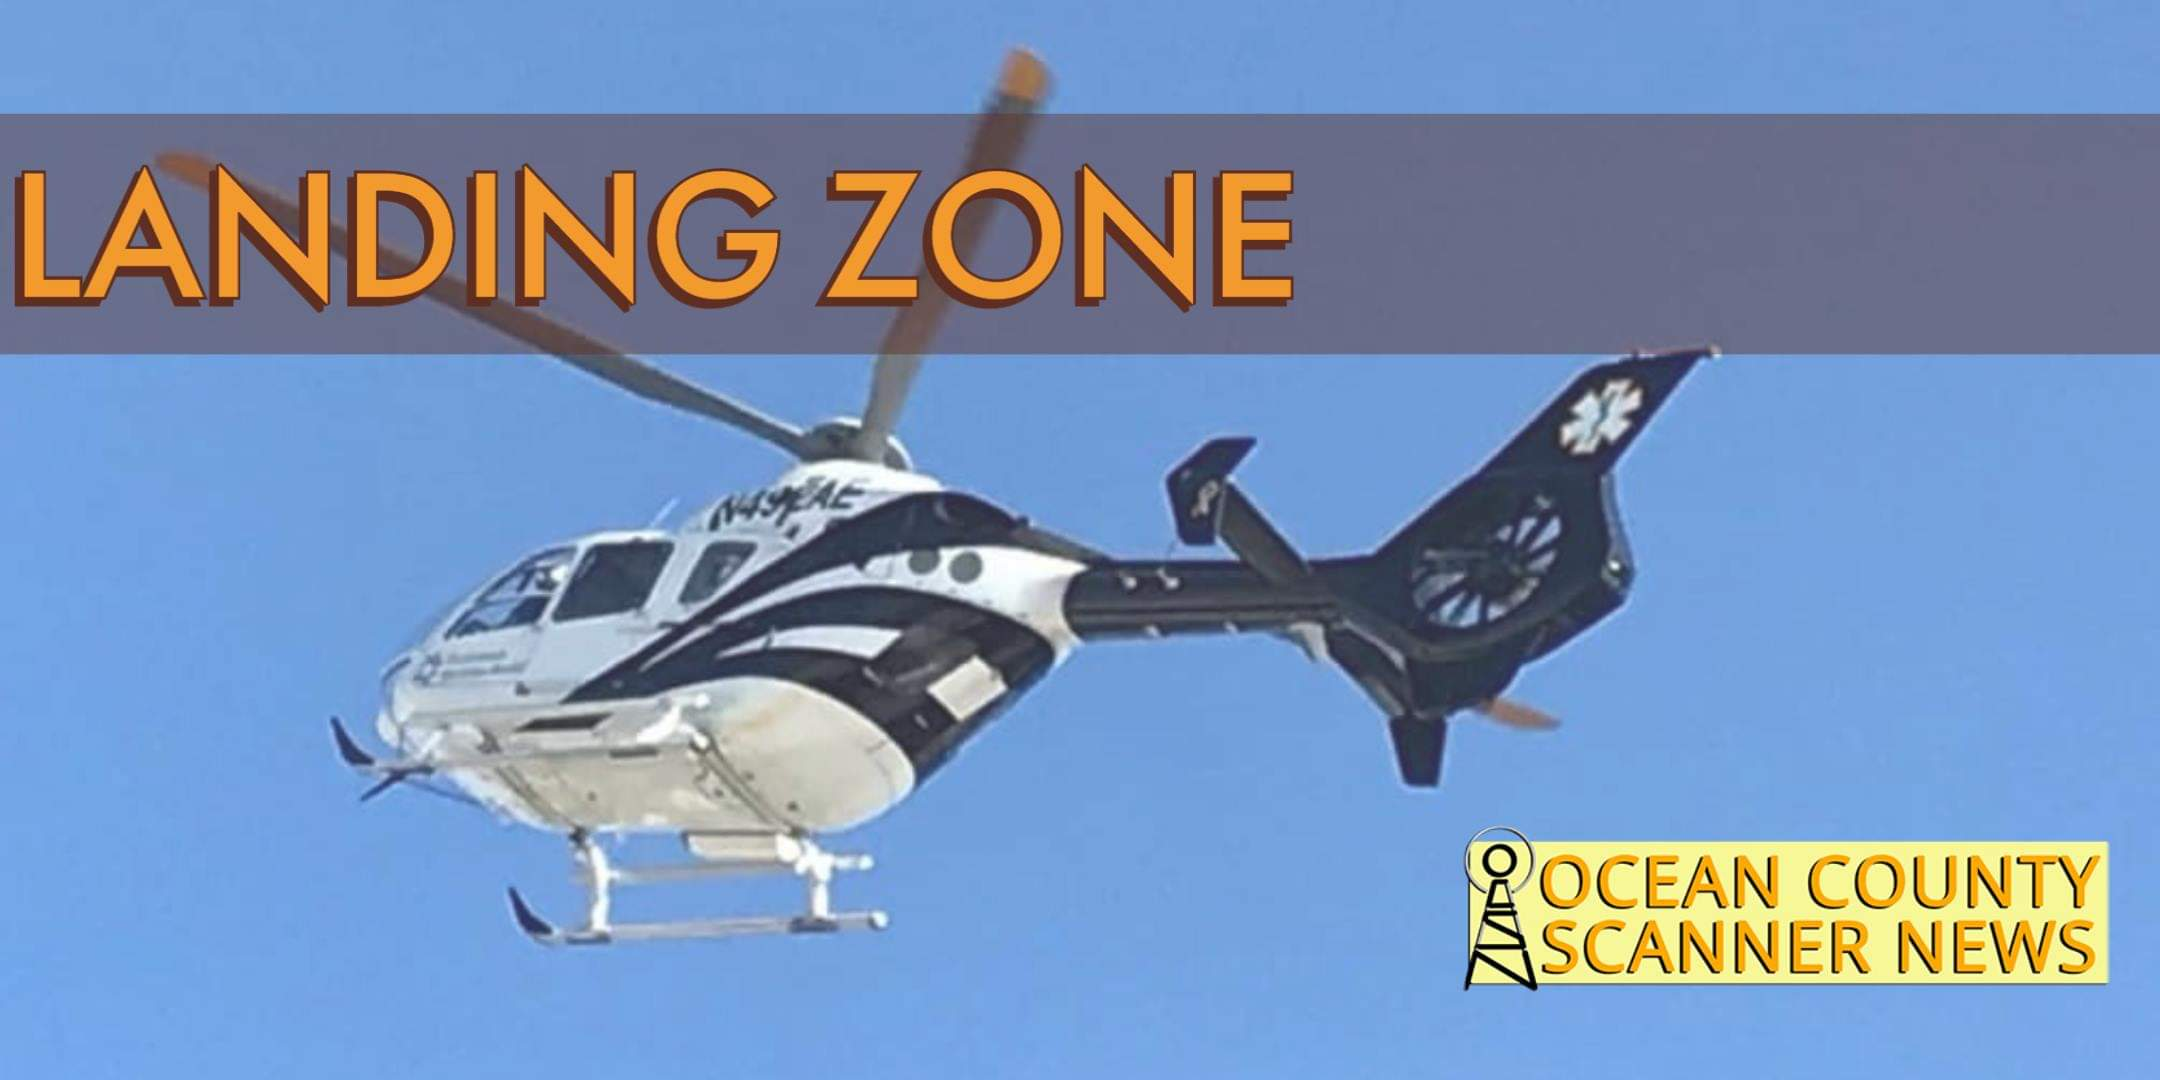 Seaside Park: Landing Zone